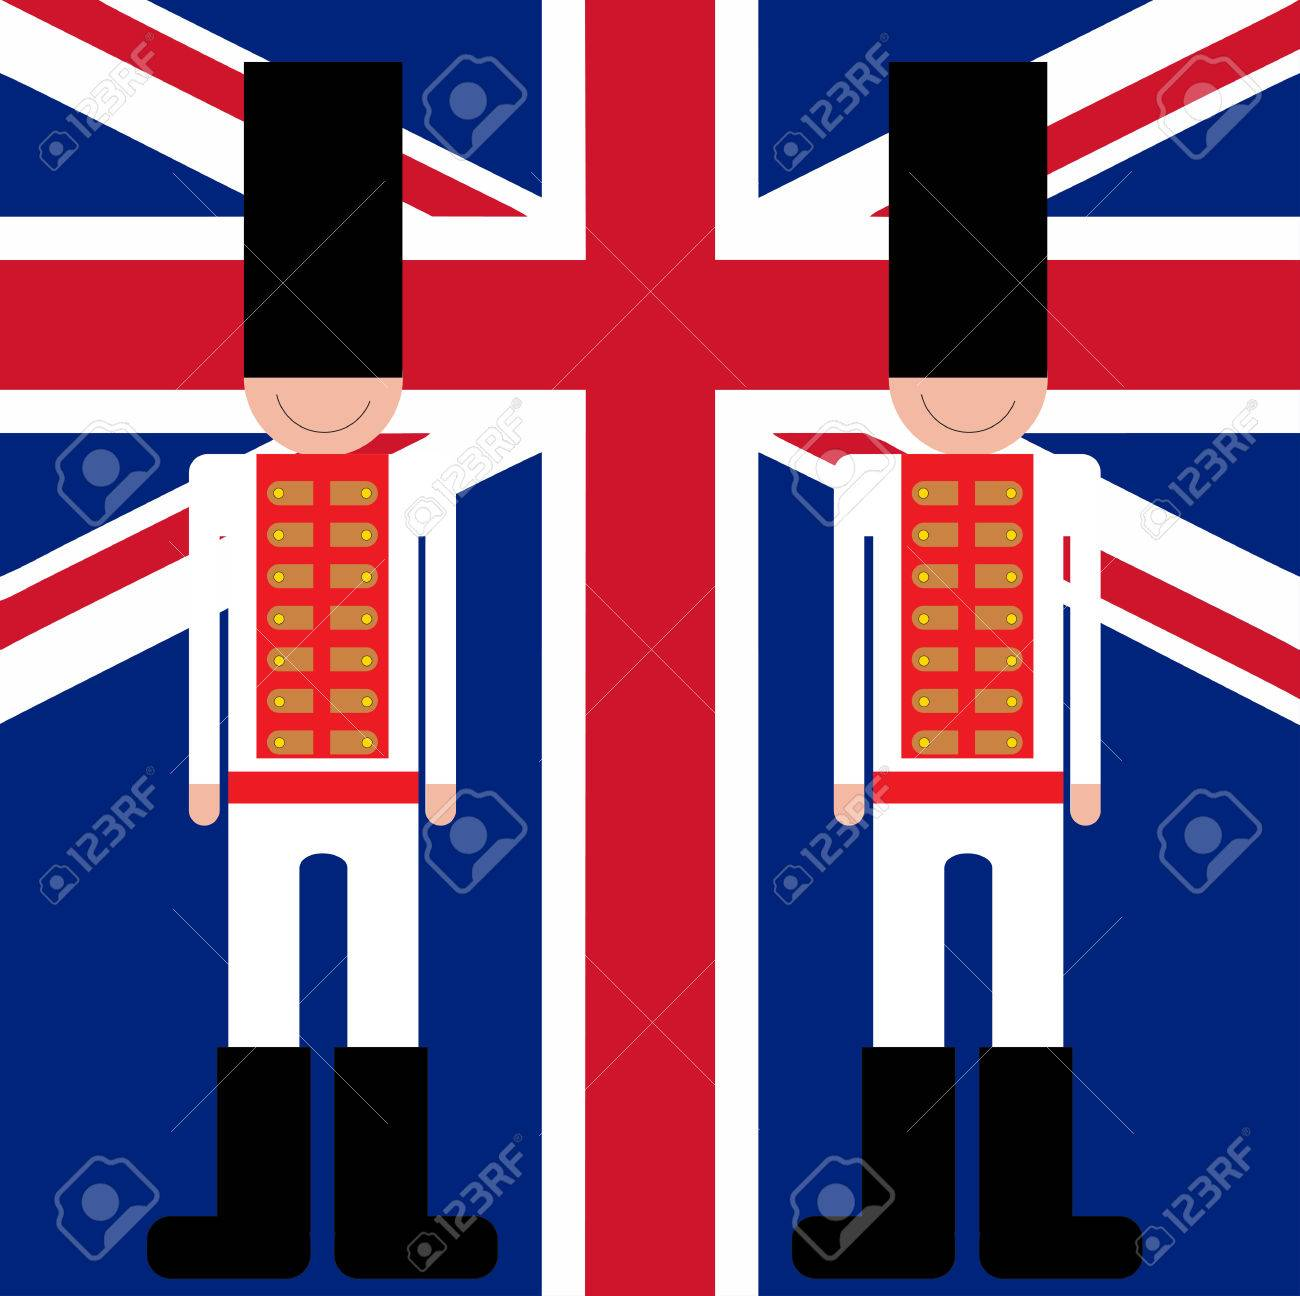 british royal guards stand guard in suits and hats royalty free